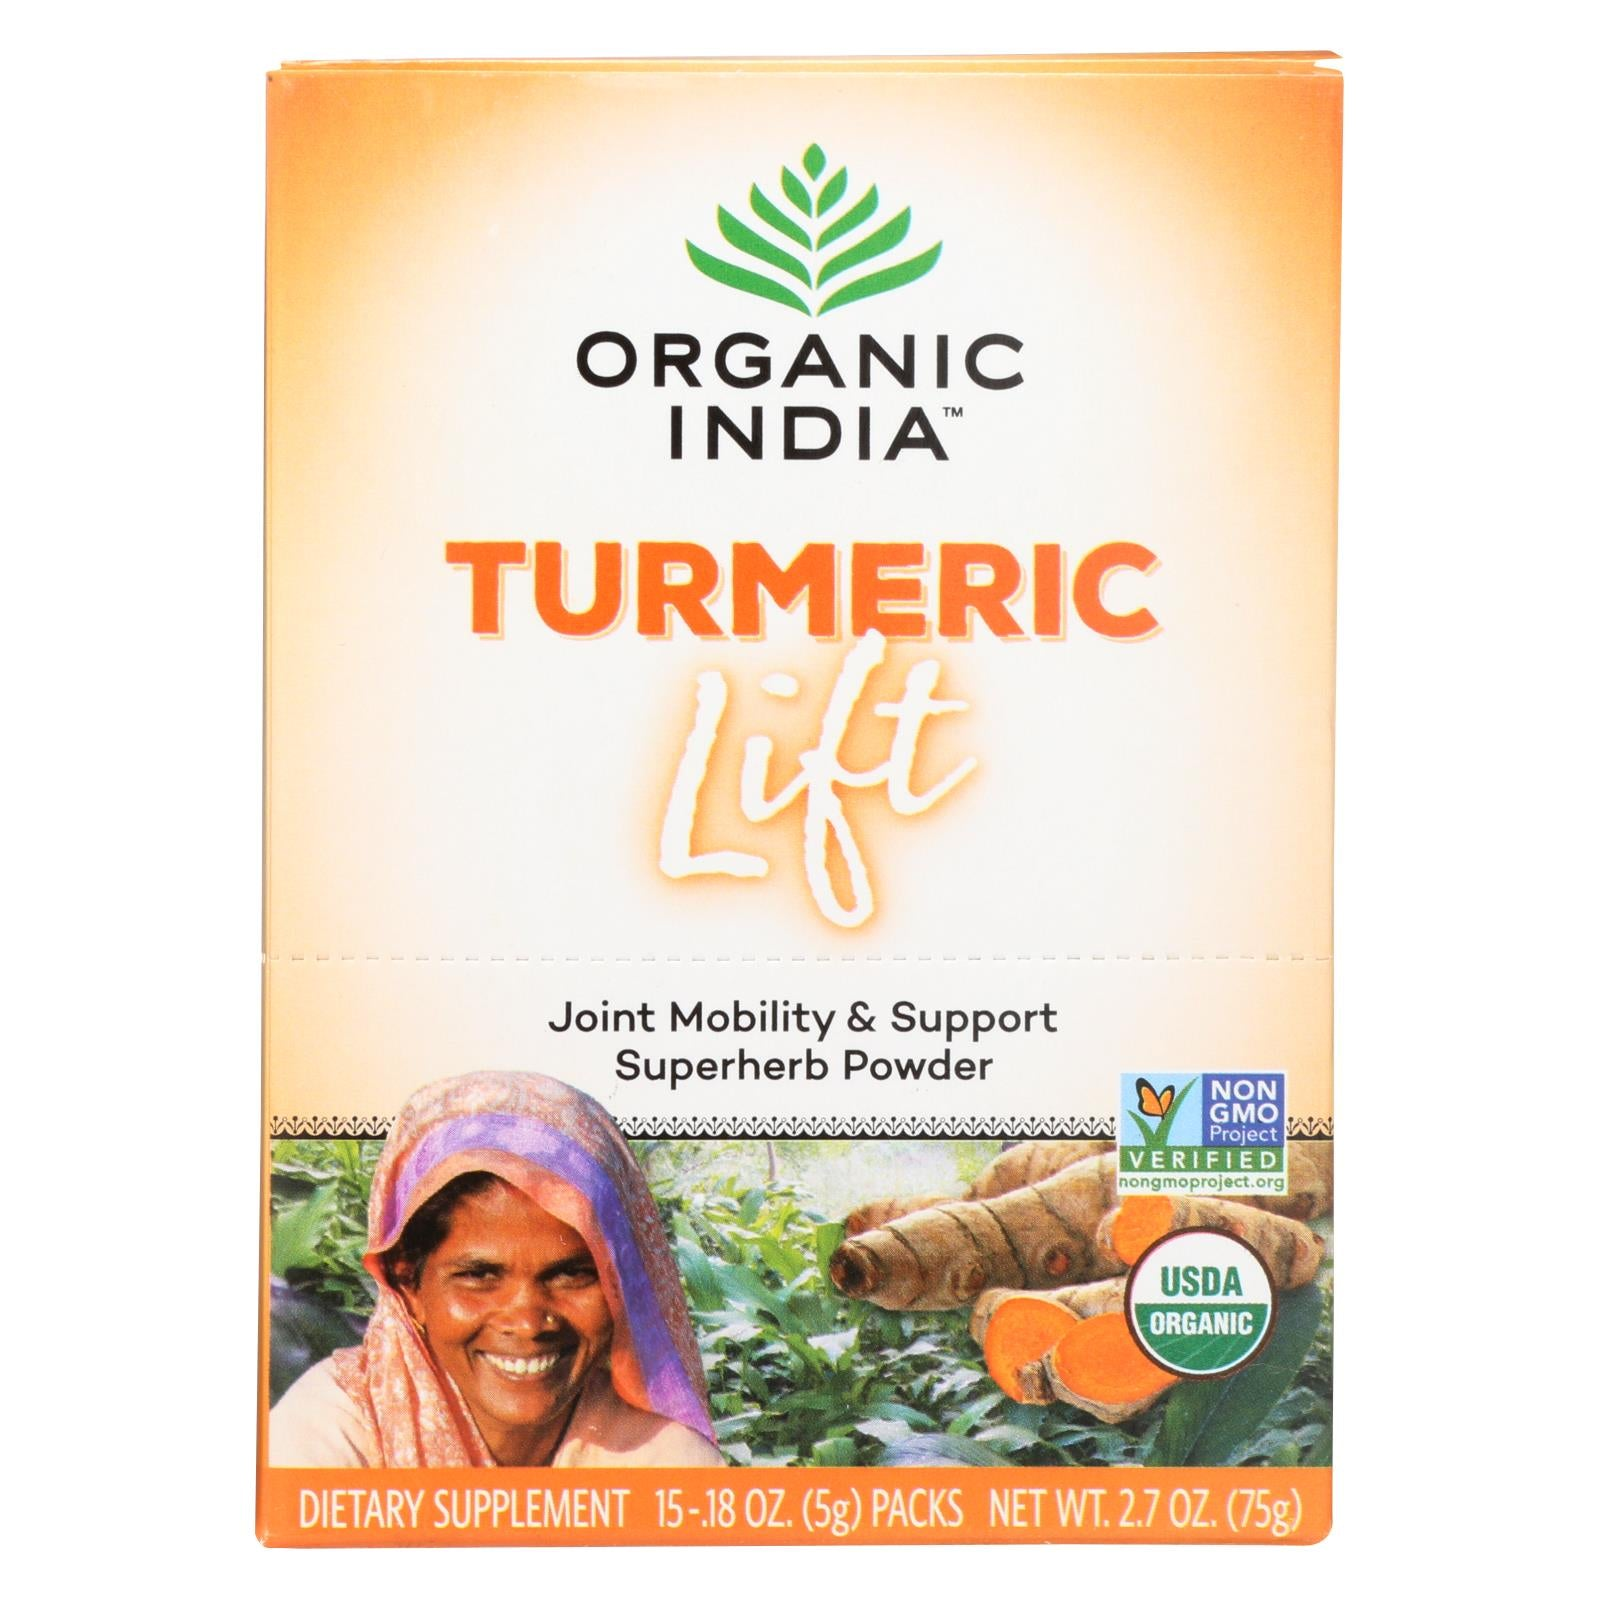 Buy Organic India Lift Box - Turmeric - 15 count - Salt, Spices and Seasonings from Veroeco.com